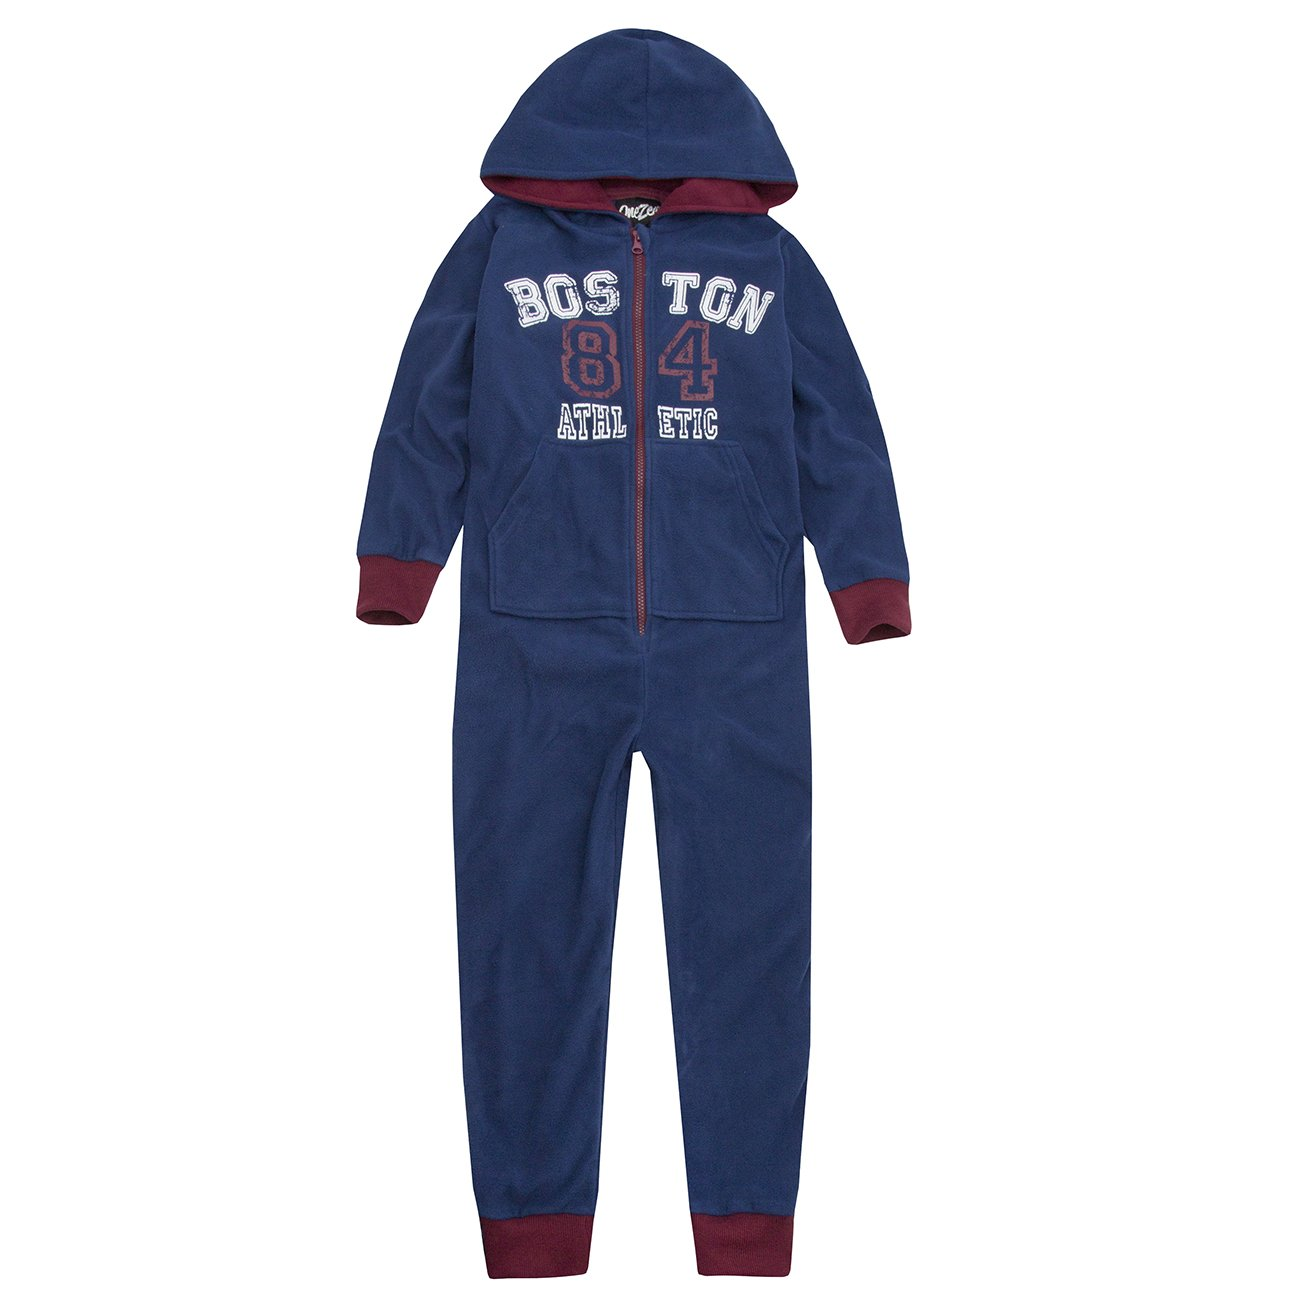 Boys Hooded Jumpsuit All in One Fleece Pyjama Sleepsuit Onesee 2 Styles 4 Colour